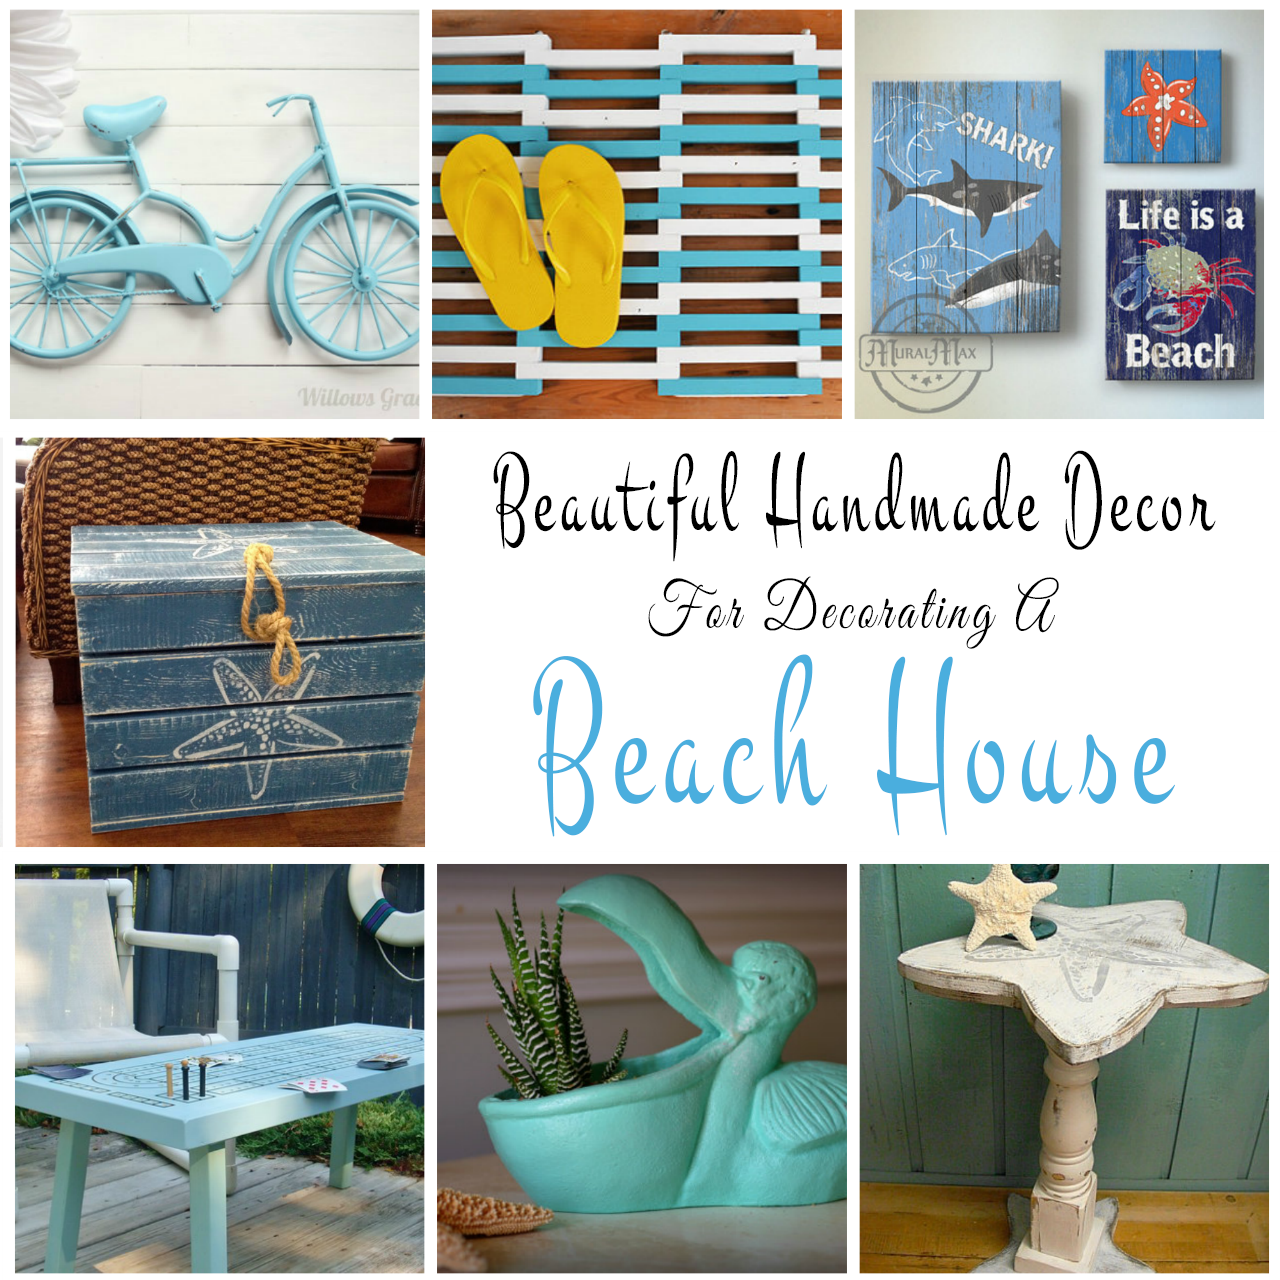 Handmade decor ideas for decorating a beach house for Small beach house decorating ideas